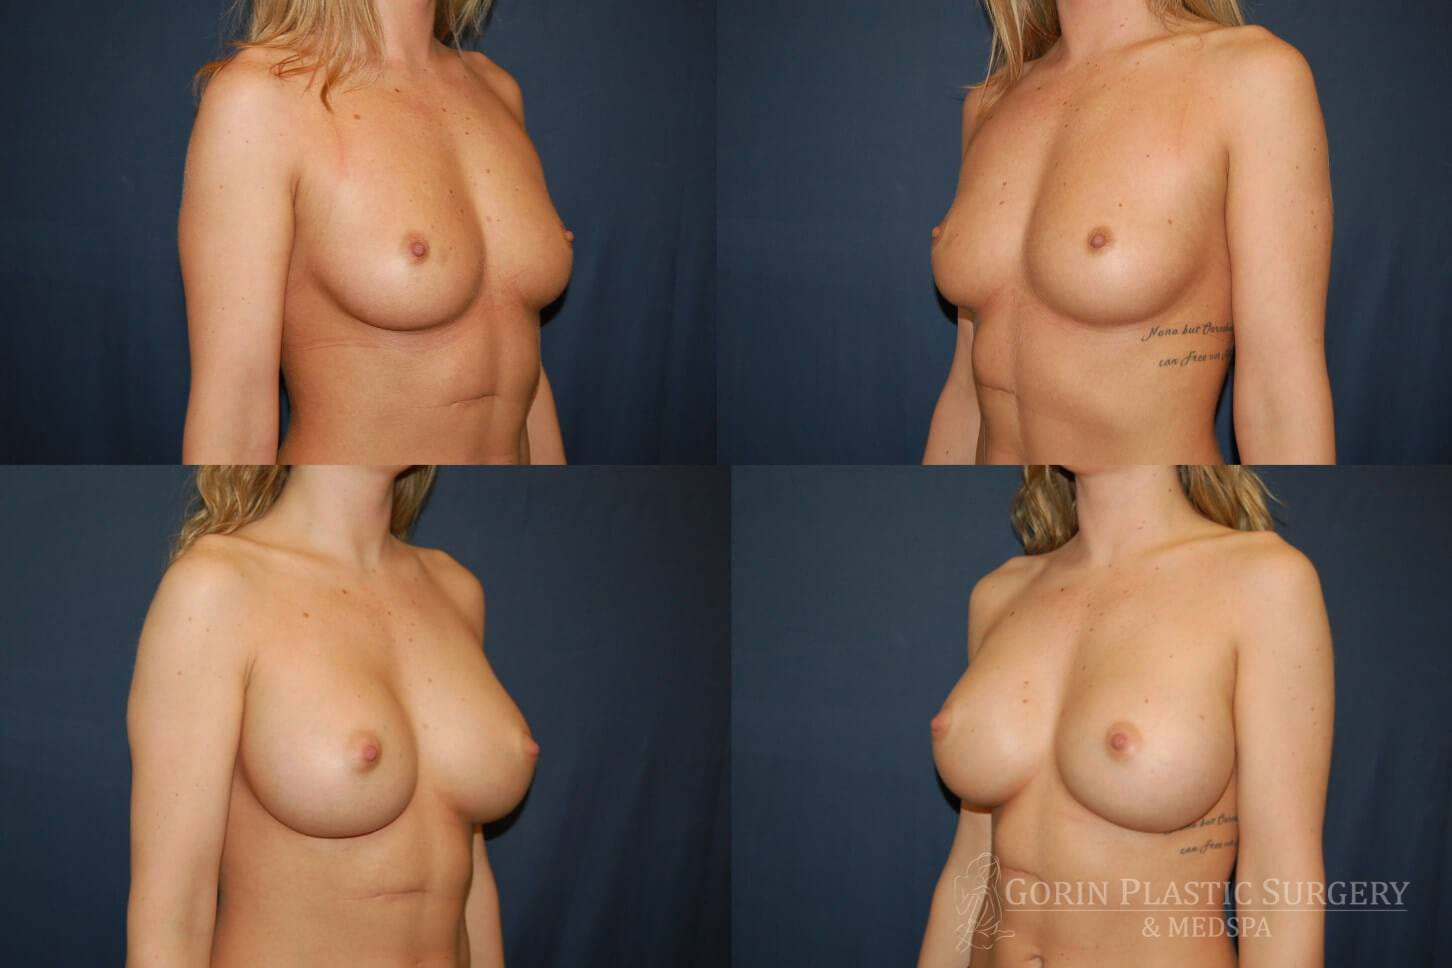 before and after oblique view 2